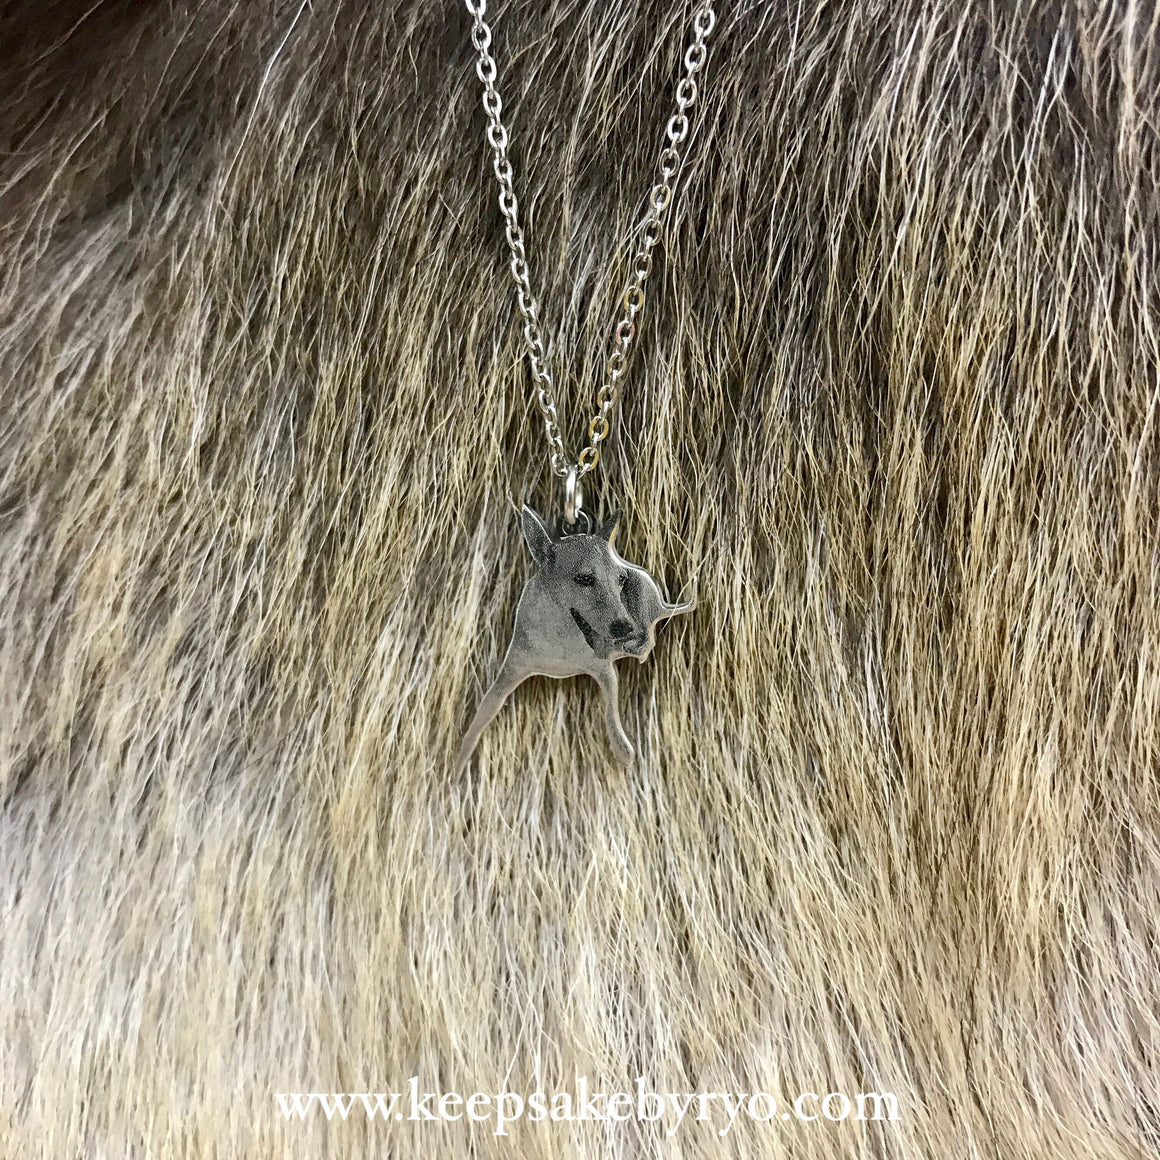 Engraved by Ryo: Fur Baby Photo Necklace